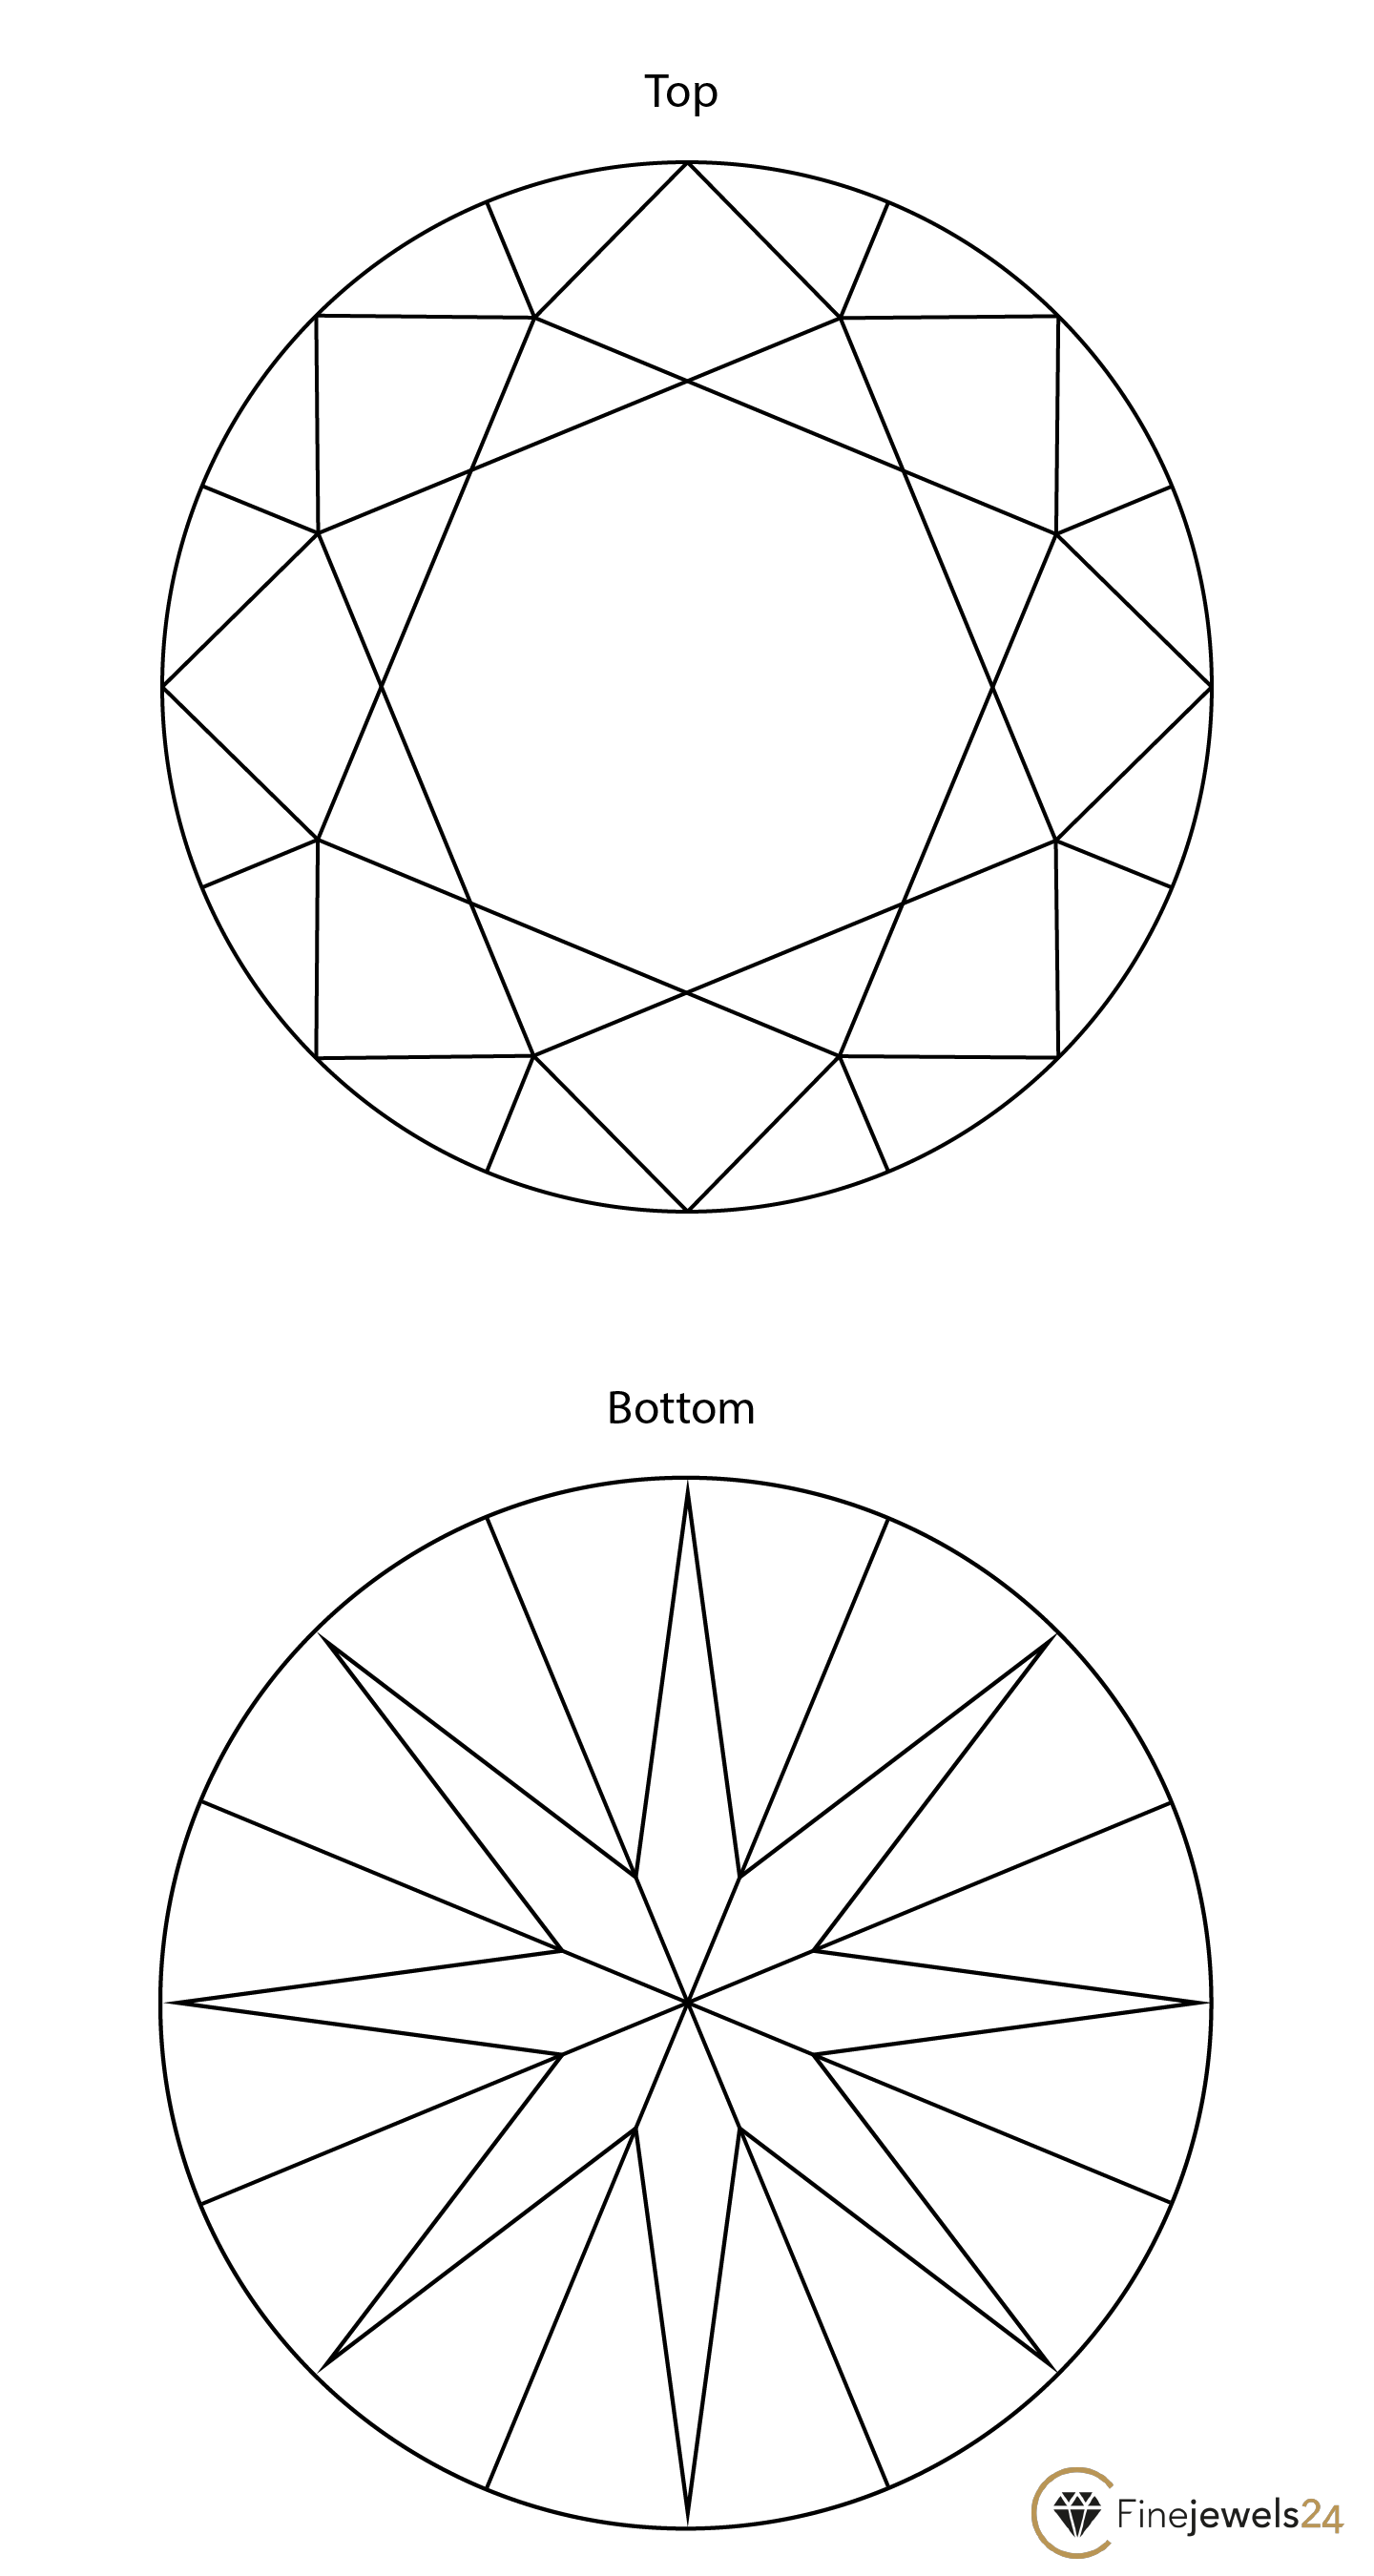 Brilliant cut sketches top and bottom view